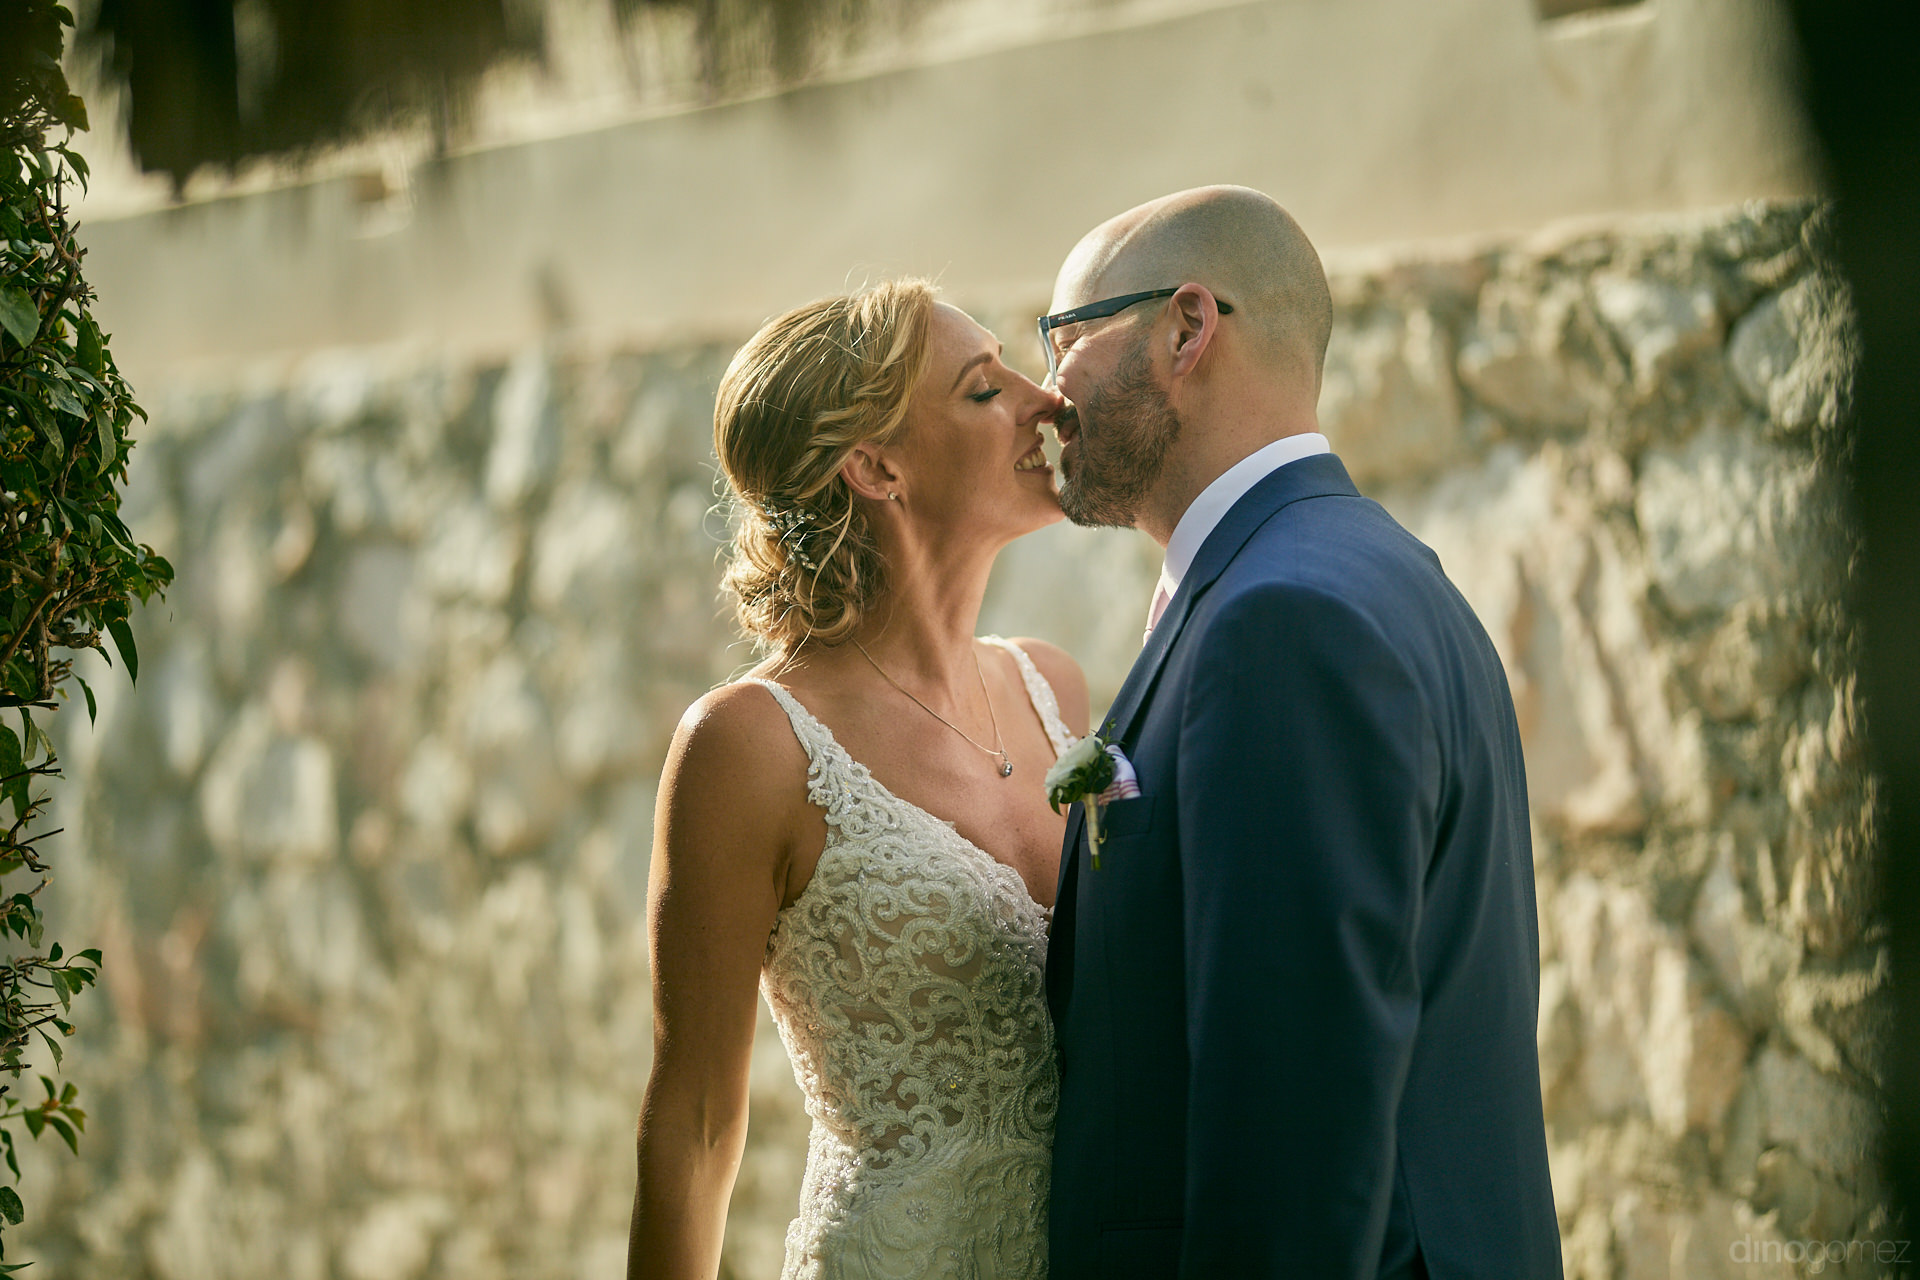 Los Cabos Wedding Photographer Caught This Couple Unaware Of What Was About To Happen - Mm